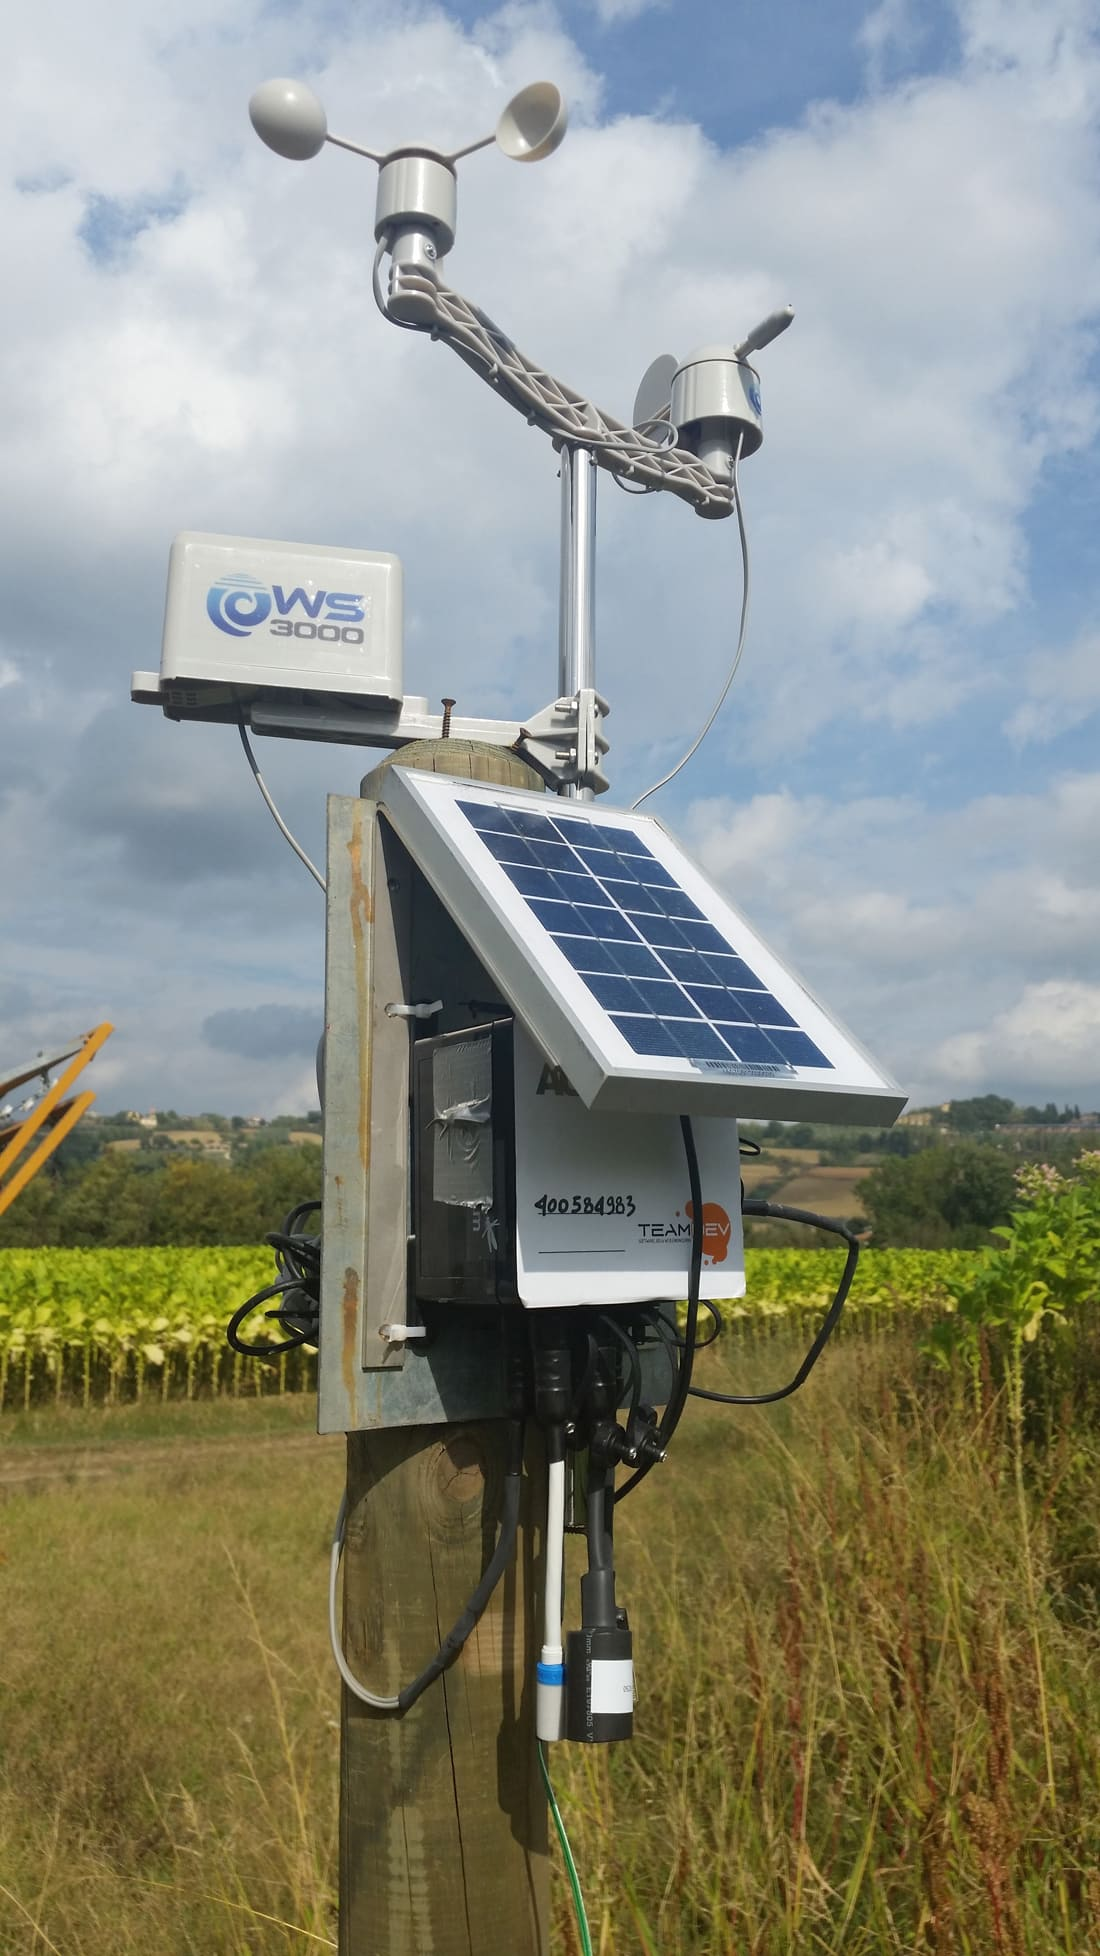 One of the sensor nodes installed in tobacco's crops